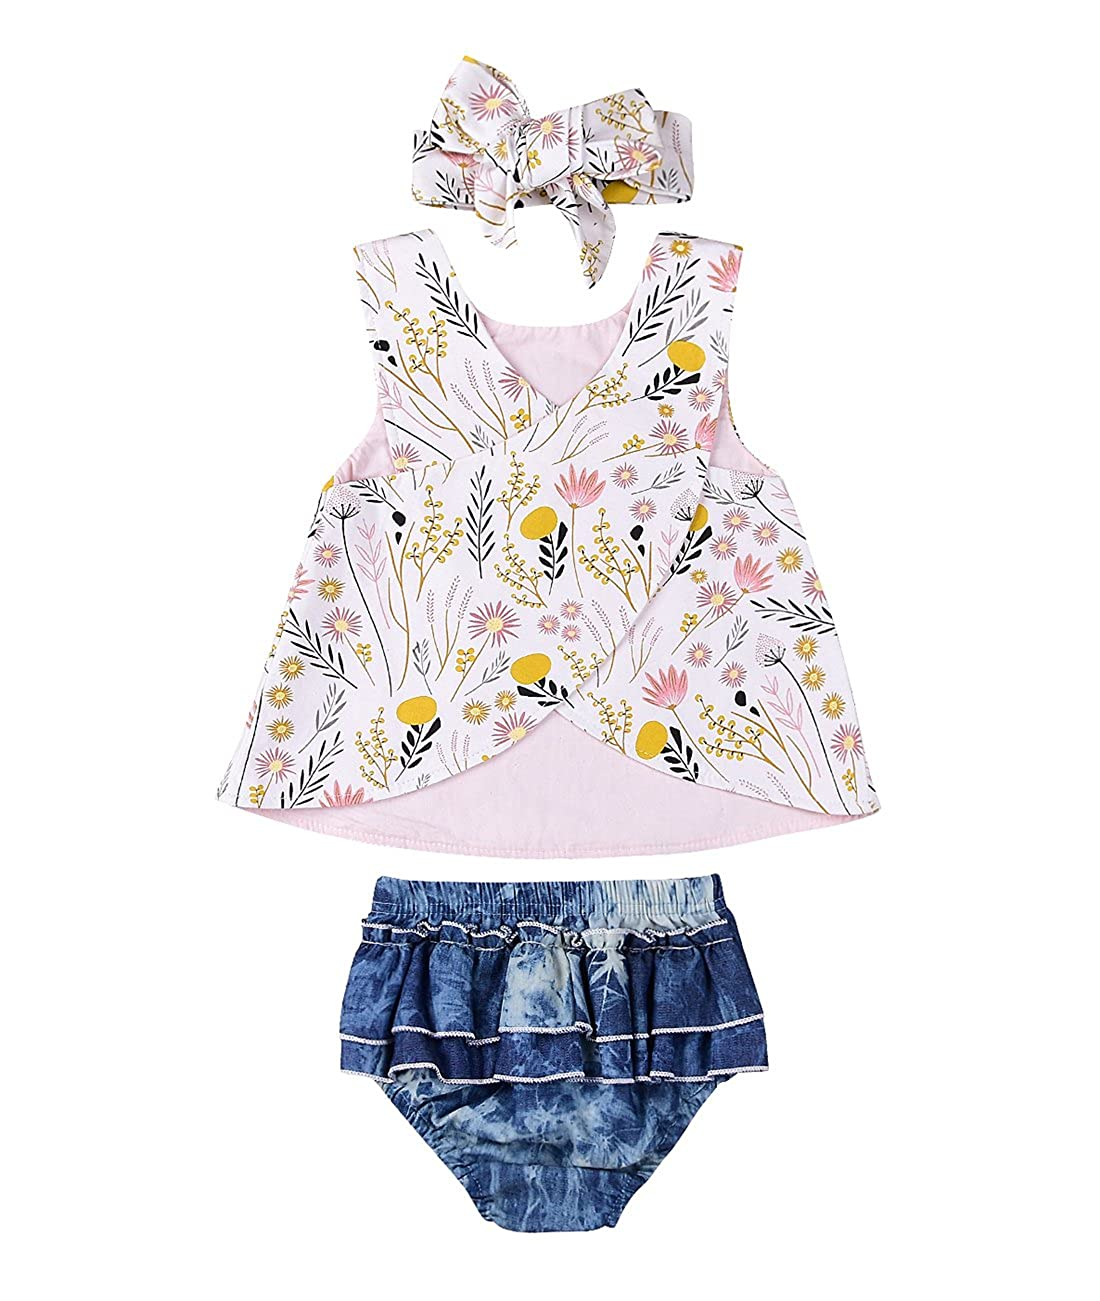 196e5bf2d967 Miward Infant Baby Girl Outfit Wildflowers Cross Vest Ruffled Leaf Short  Pants With Headband Clothing (Tag: 90/12-18 Months, White): Amazon.in:  Clothing & ...